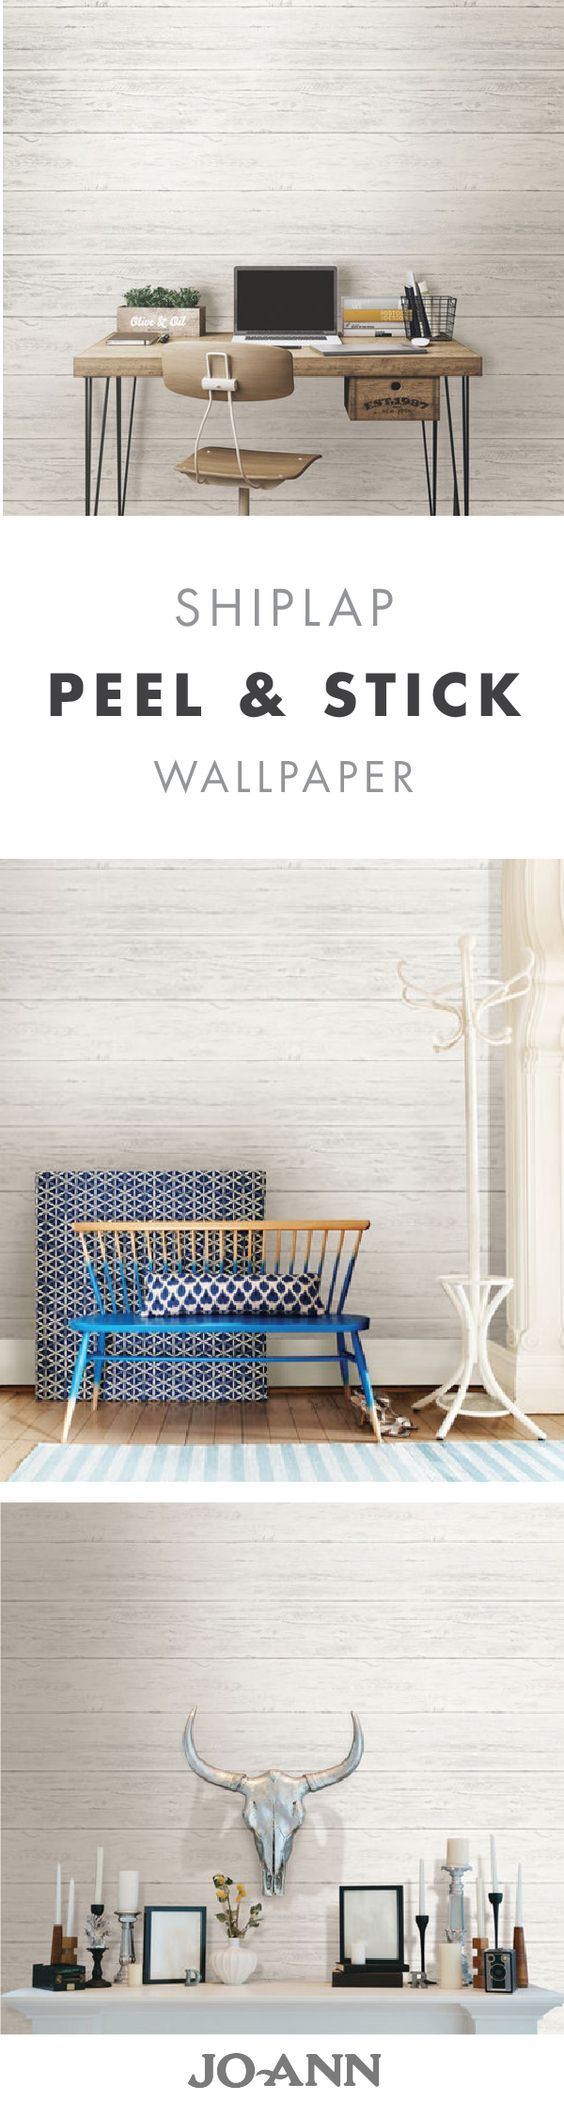 If you love the look of shiplap but don't want to commit to renovating your home—no worries! This Shiplap Peel and Stick Wallpaper gives off the perfect amount of rustic charm while also boasting an easy install.